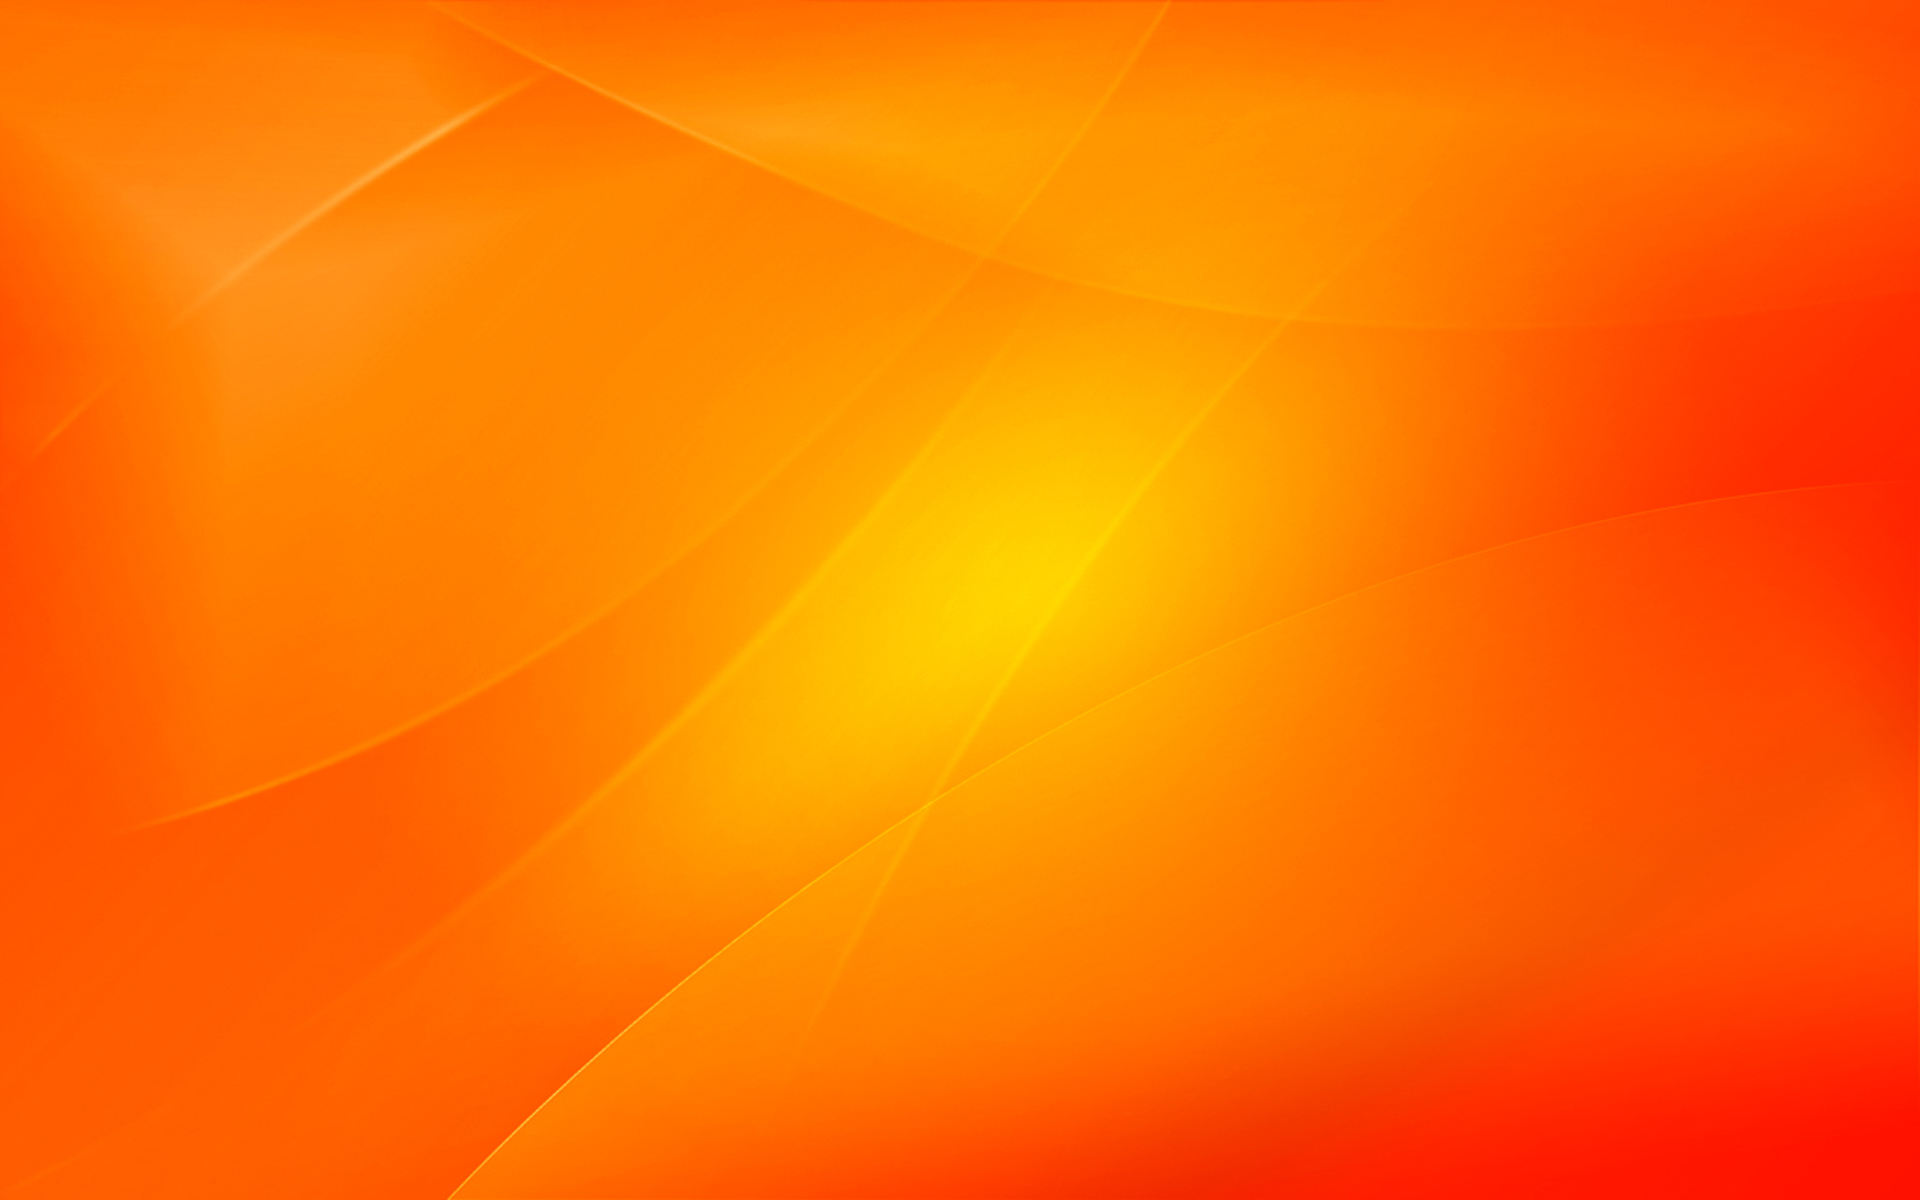 Tags: wallpaper orange color, orange color wallpaper hd, orange color wallpaper iphone,